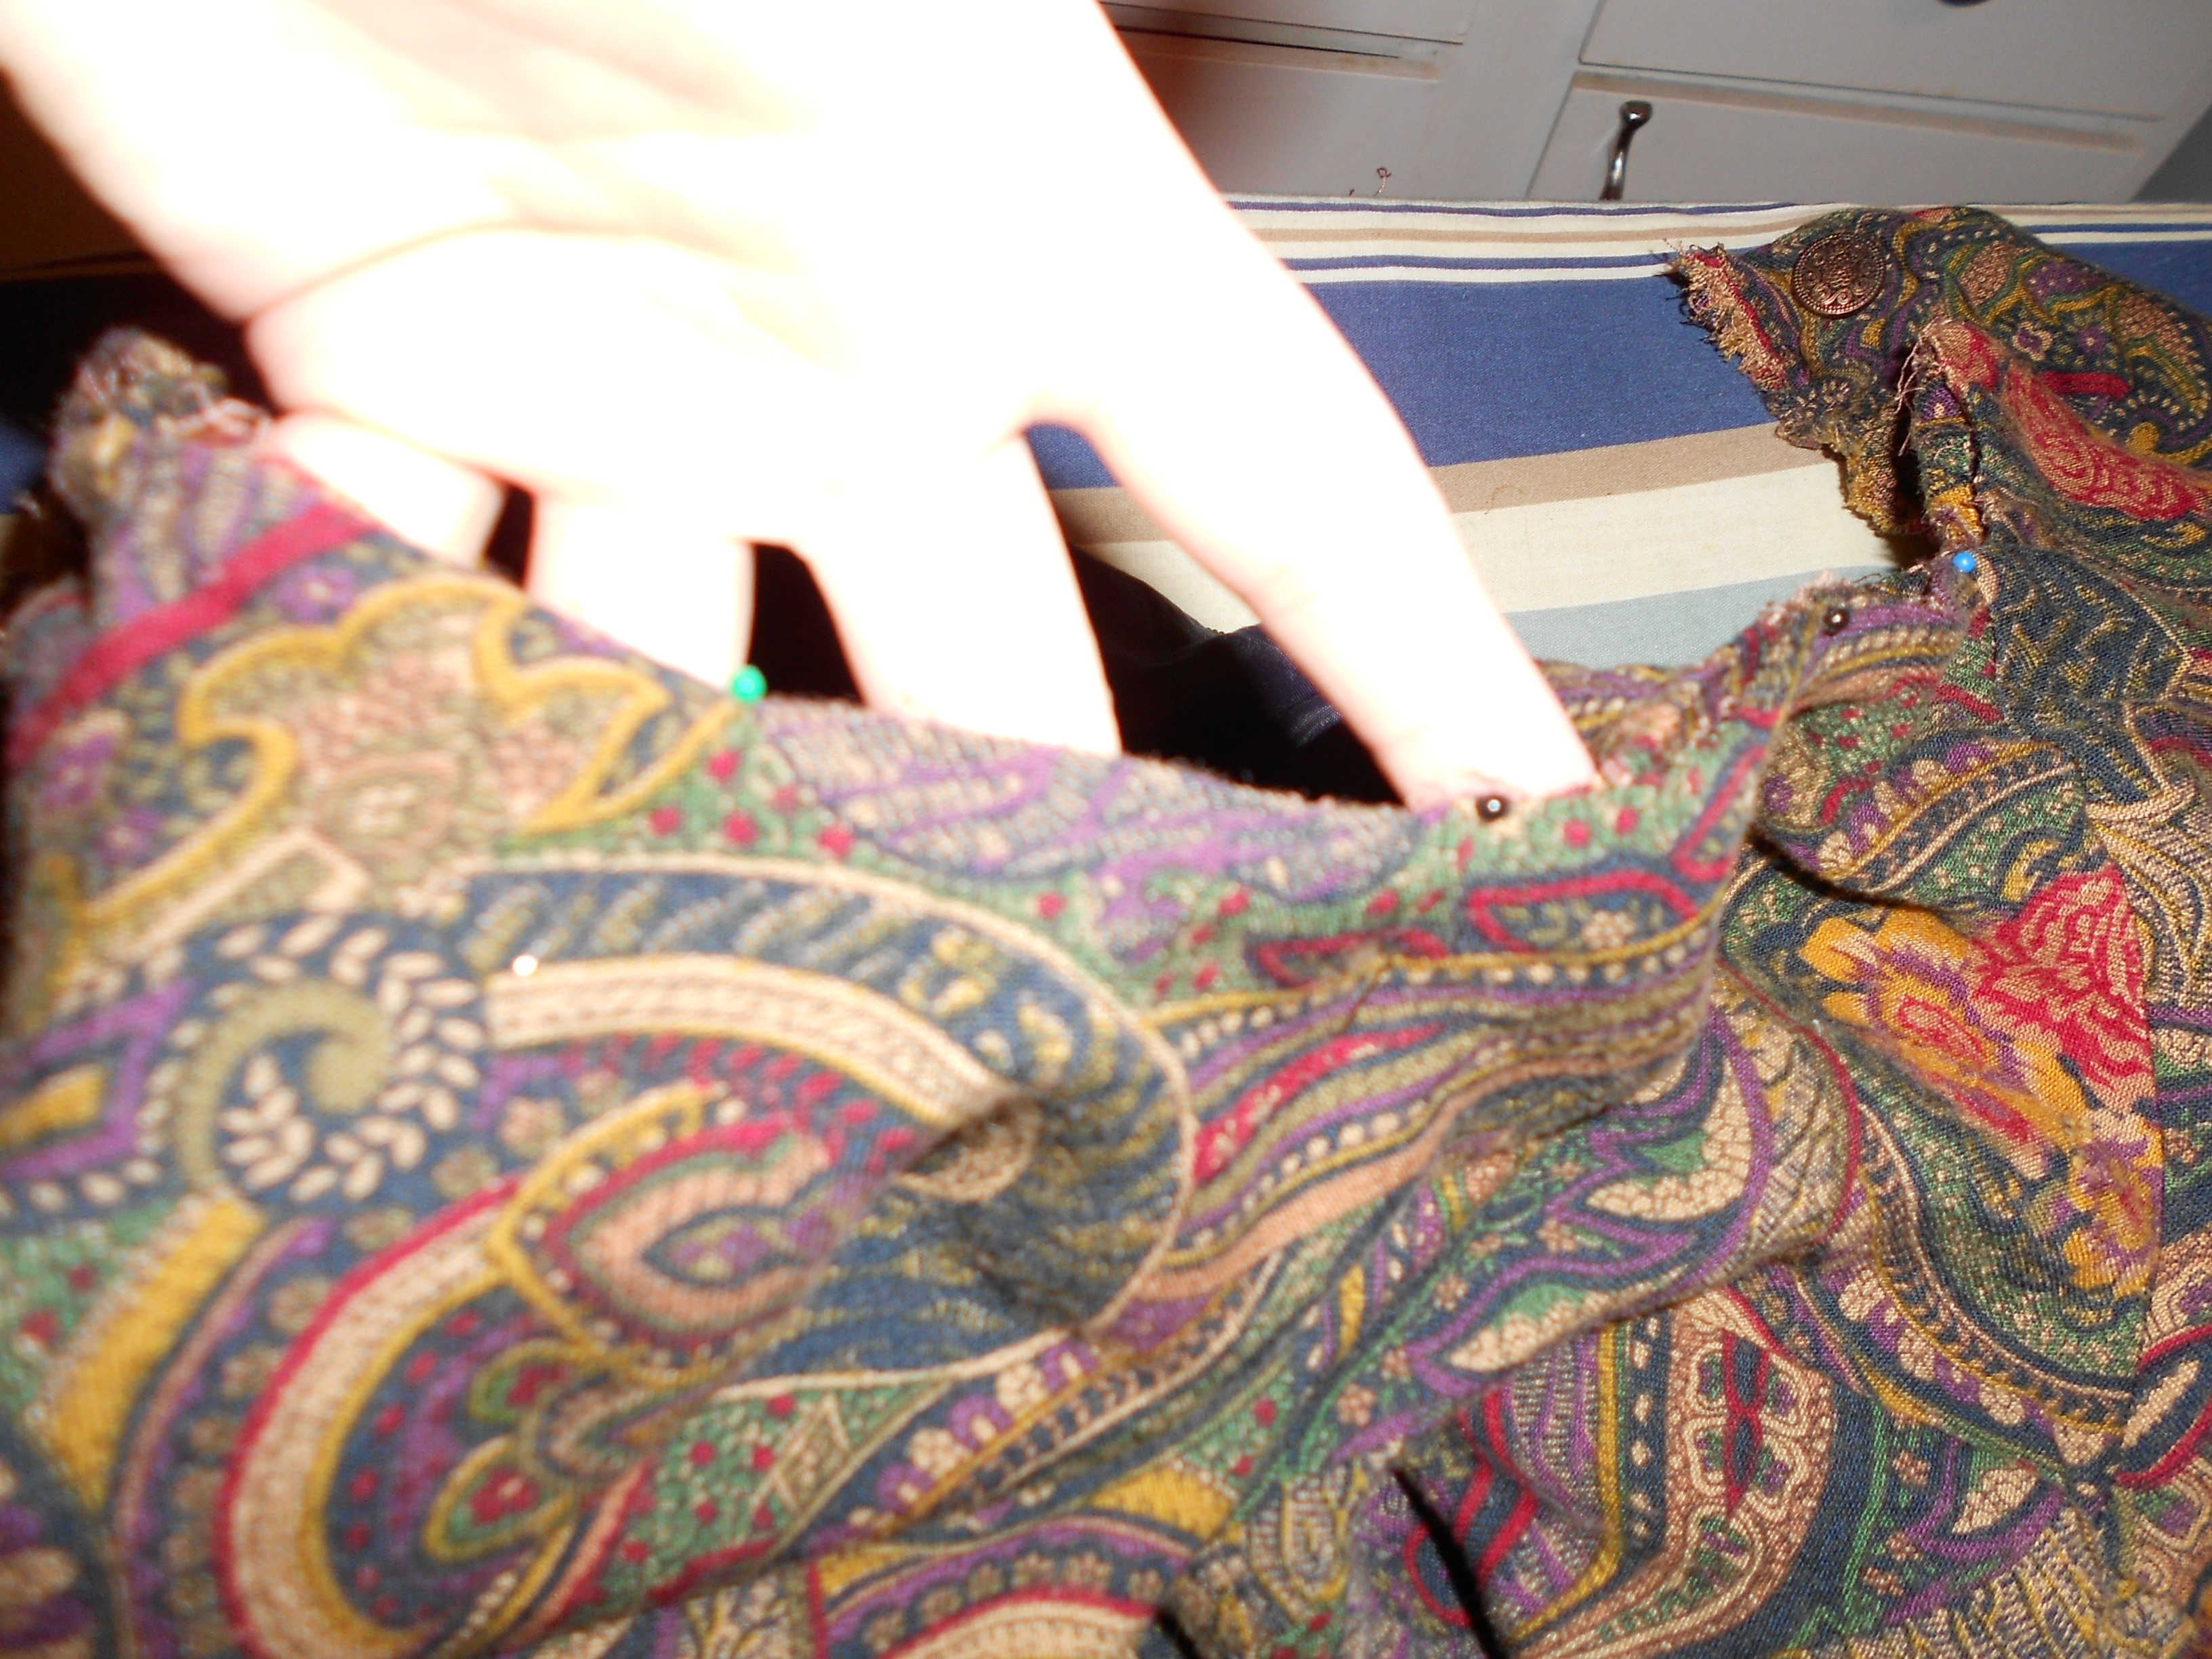 Day 198: Plucky in Paisley Dress 6